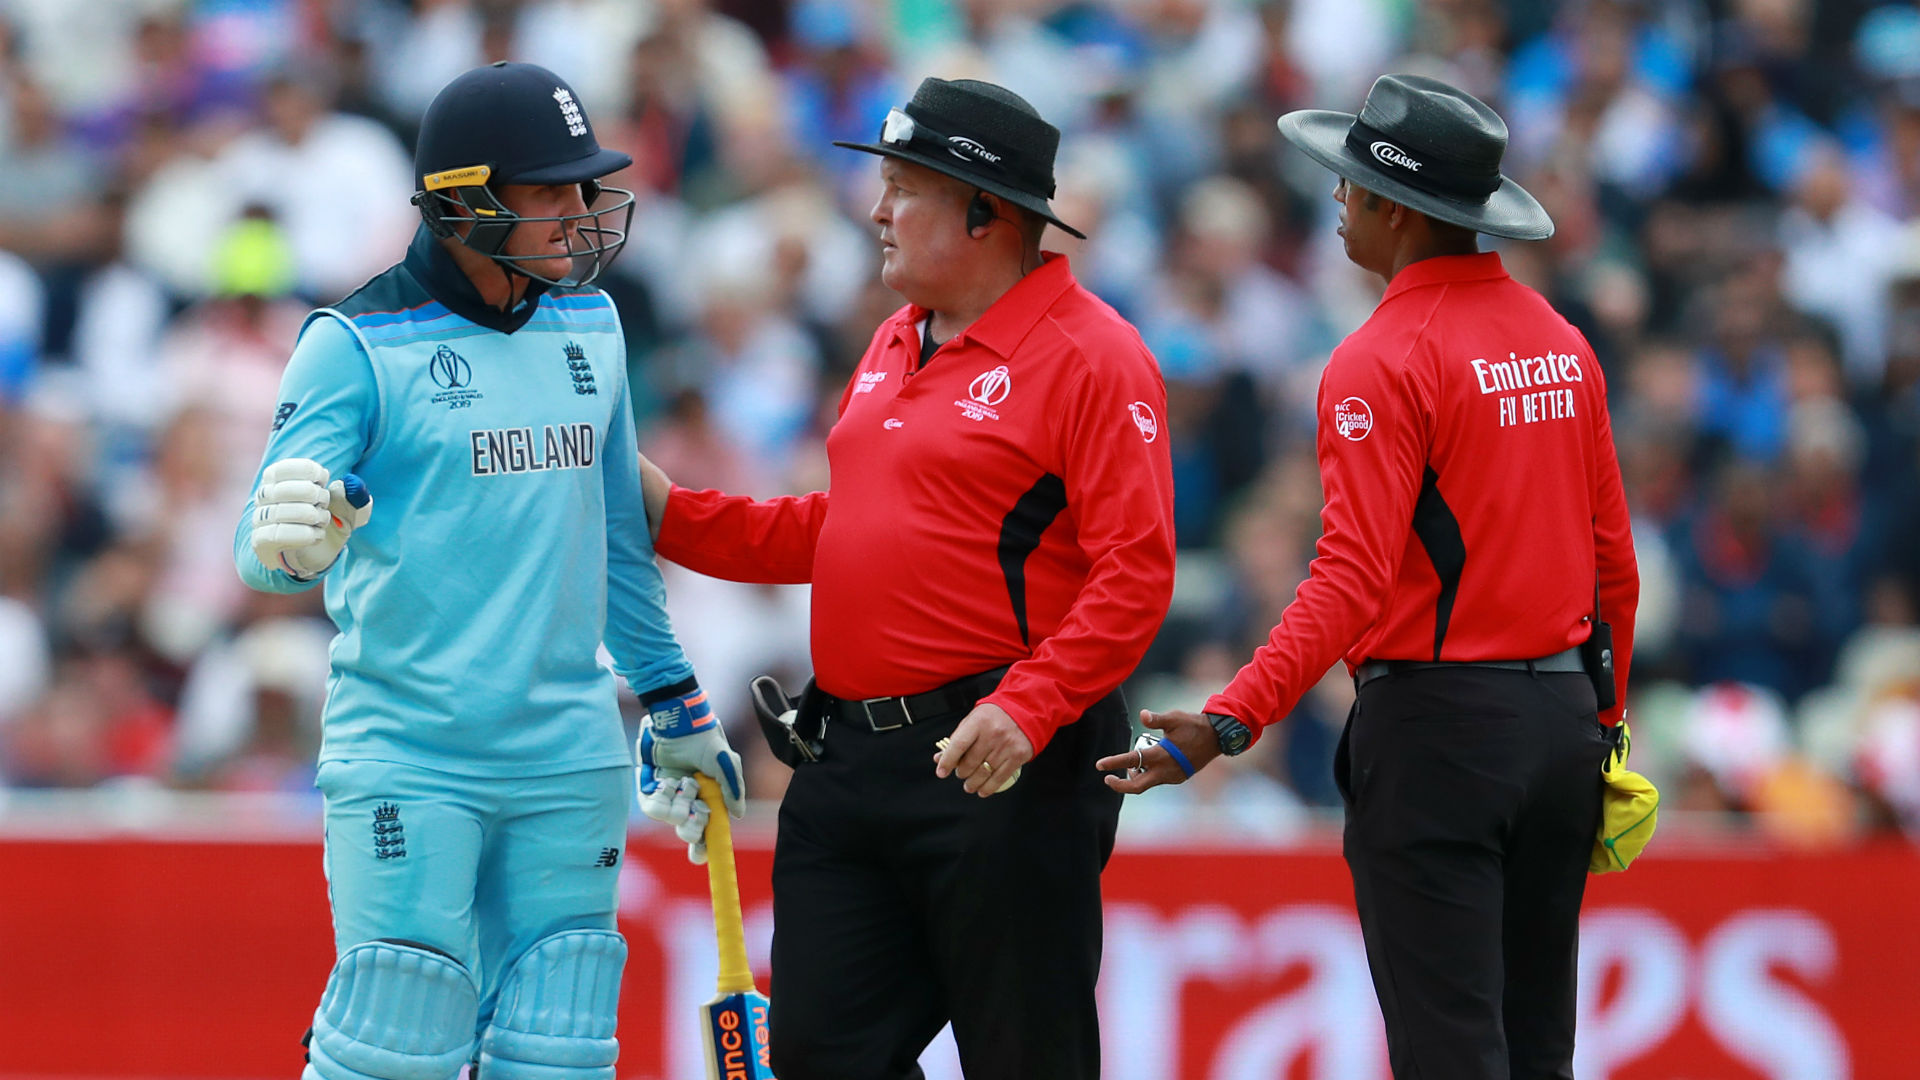 After his stunning innings was brought to a halt by a bad call from umpire Kumar Dharmasena, Jason Roy's reaction has landed him in trouble.